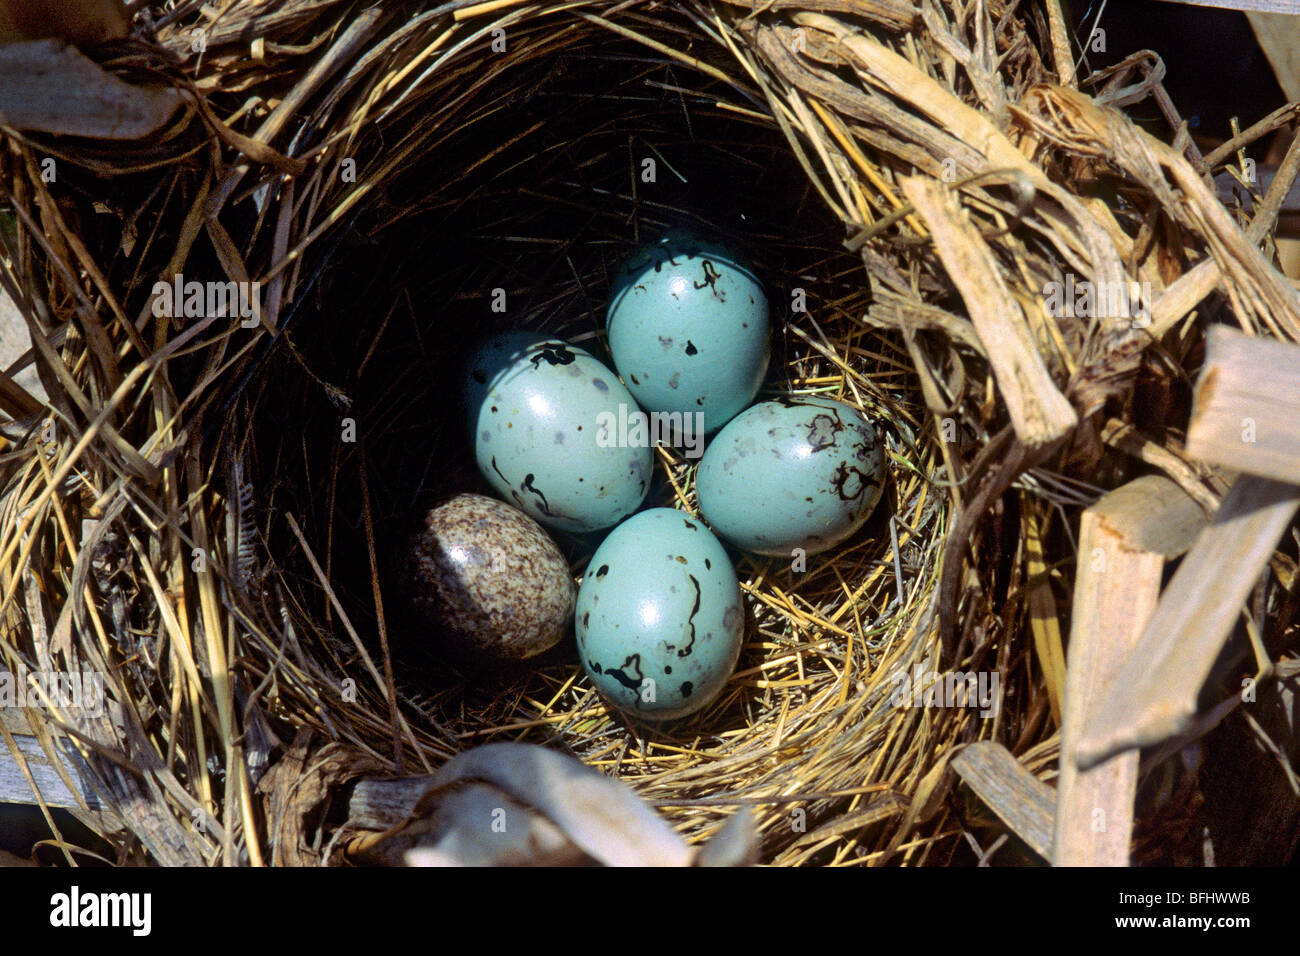 A four-egg clutch of a red-winged blackbird (Agelaius phoeniceus) - Stock Image